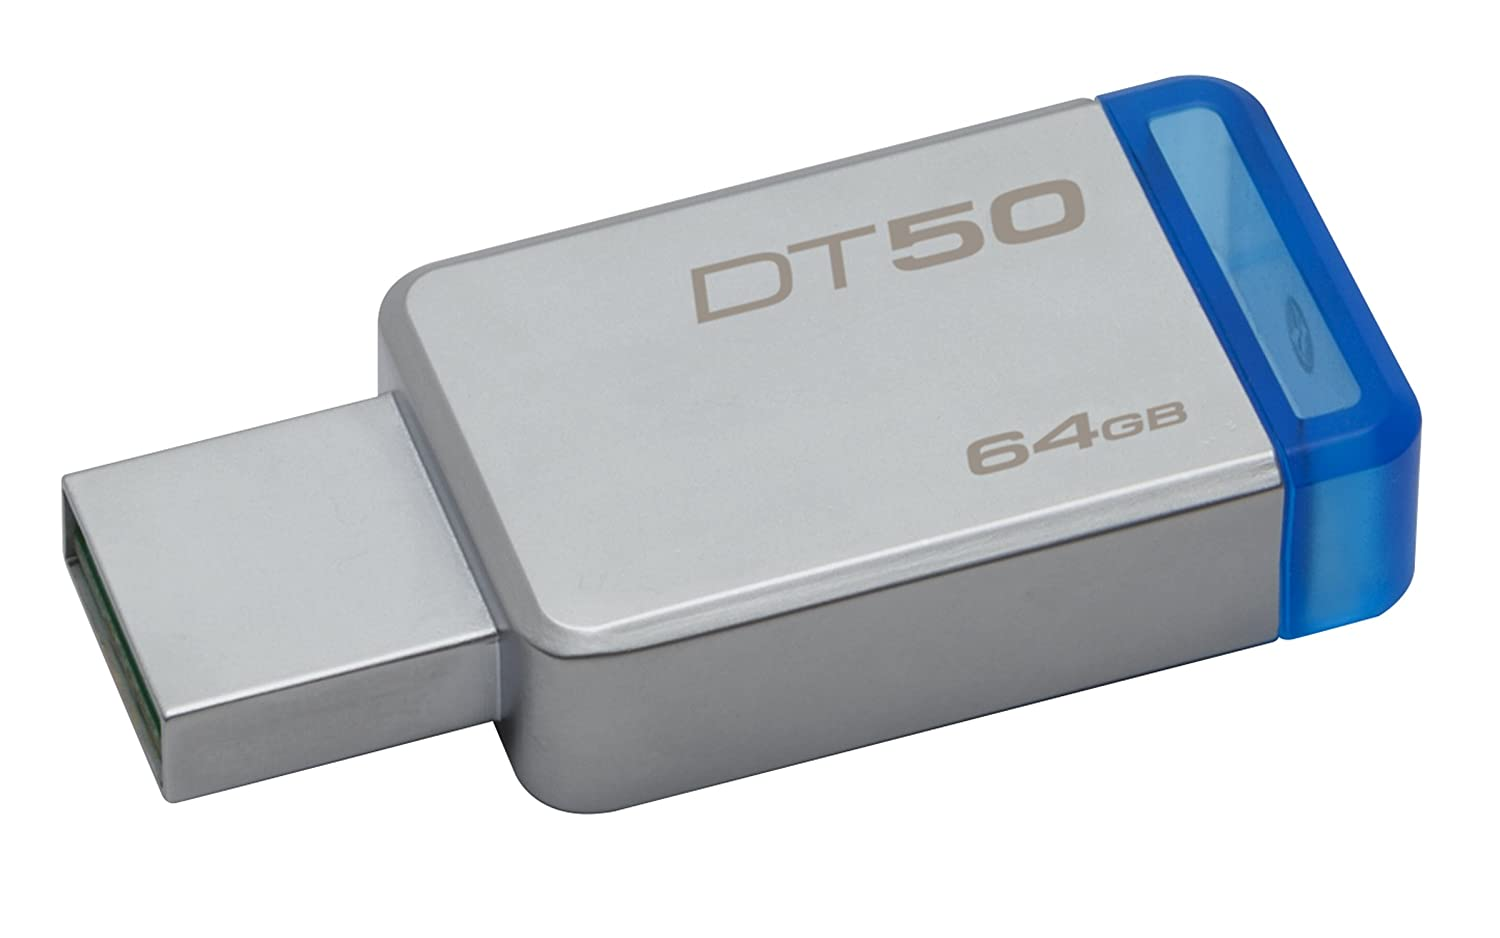 Kingston DataTraveler 50 DT50 Chiavetta USB 3.0, 64 GB DT50/64GB